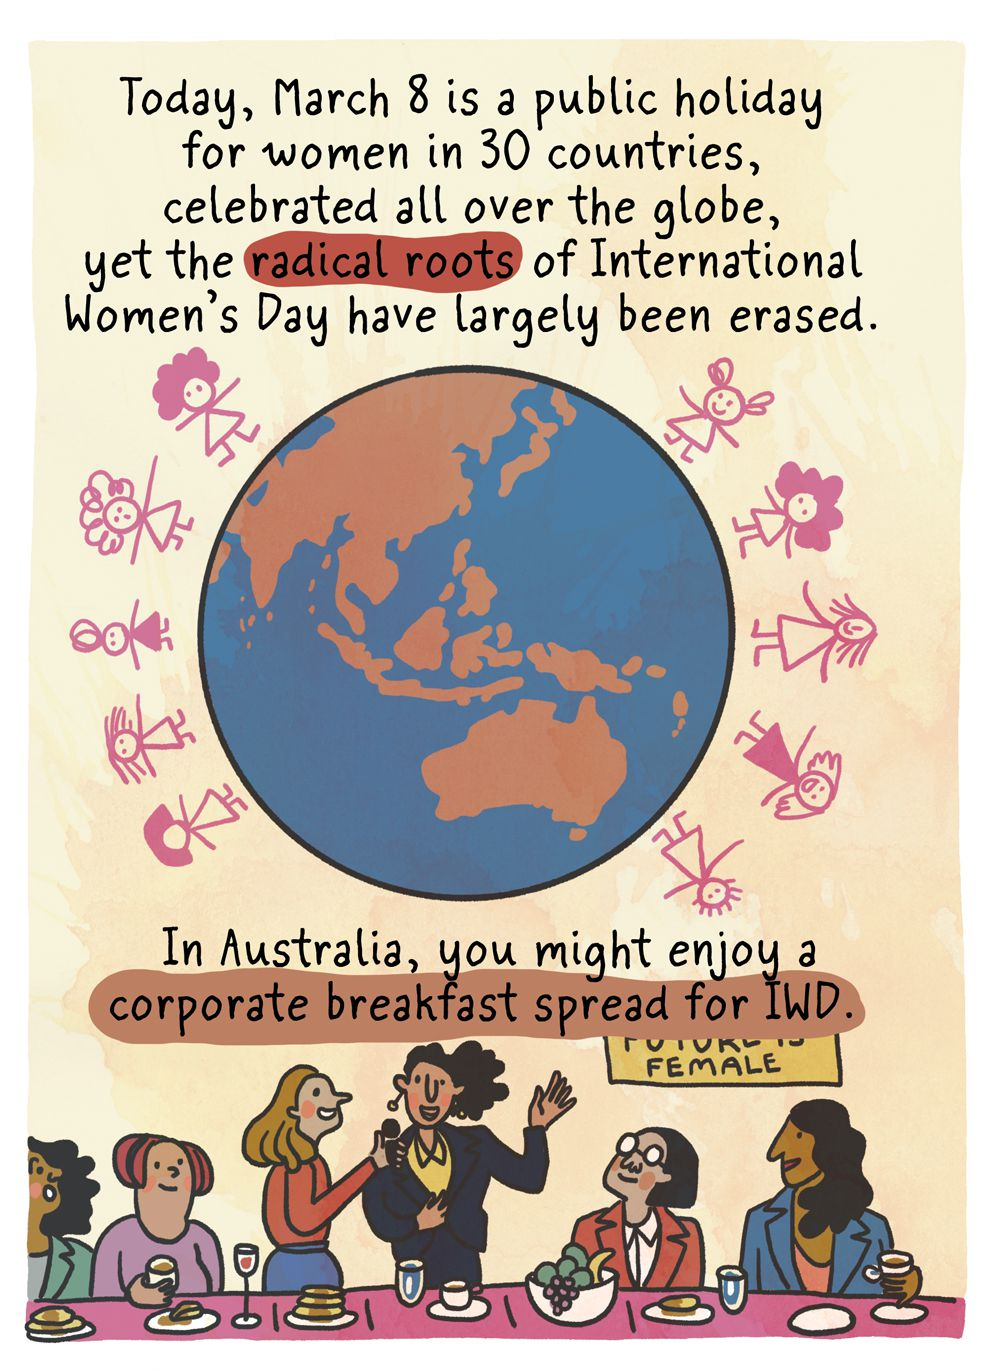 Today, March 8 is a public holiday for women in 30 countries, celebrated all over the globe, yet the radical roots of International Women's Day have largely been erased. In Australia, you might enjoy a corporate breakfast spread for IWD.